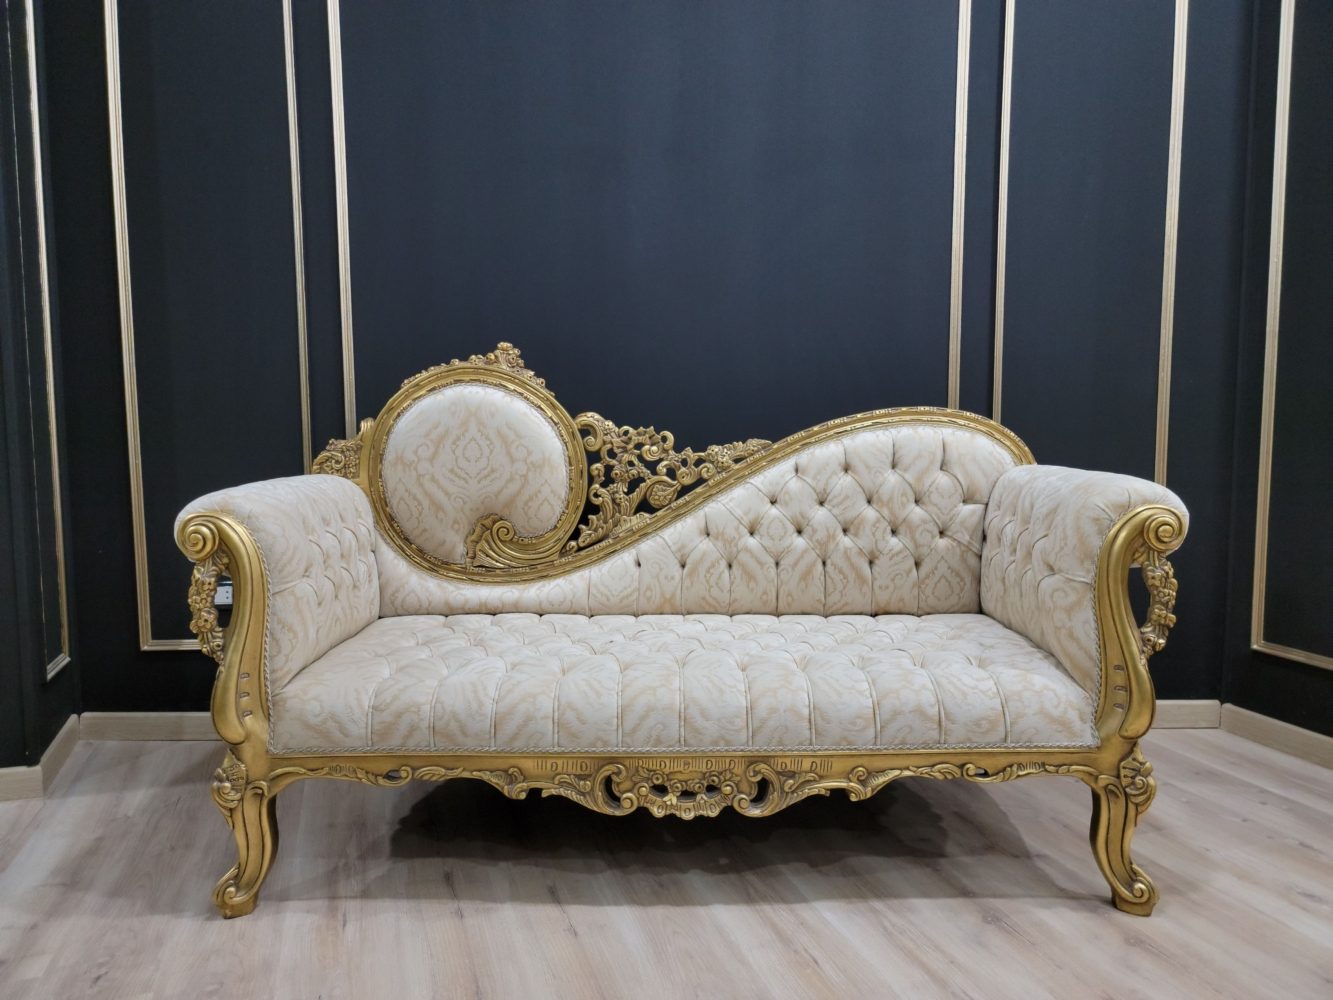 Victorian Chaise Lounge/Gold Leaf Hand/Carved Frame/Tufted Cream Gold Velvet, Chaise Lounge